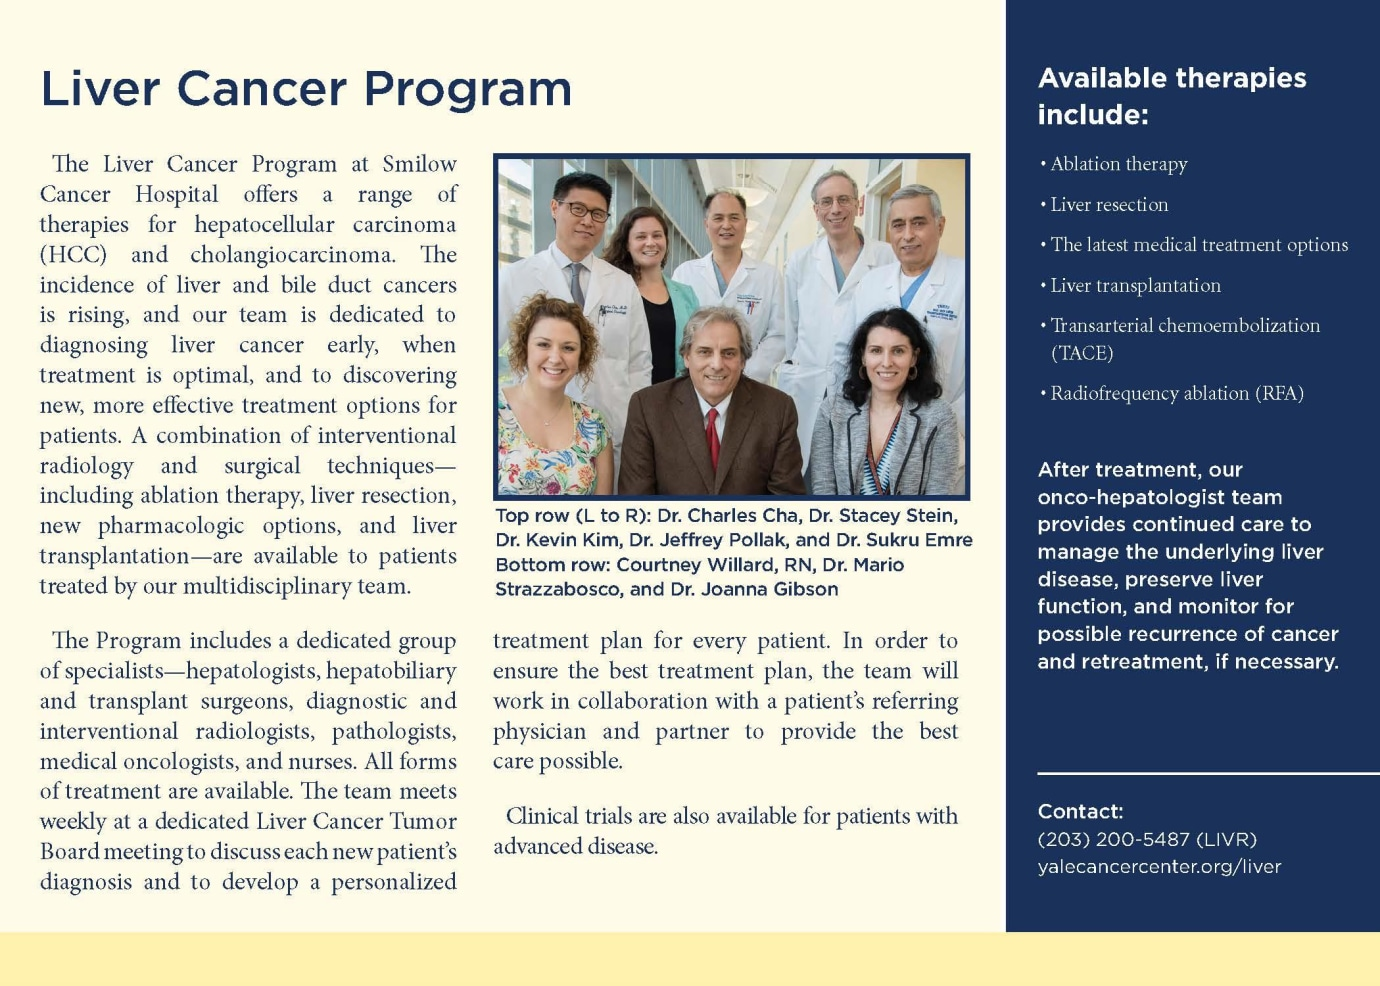 Liver Cancer Program